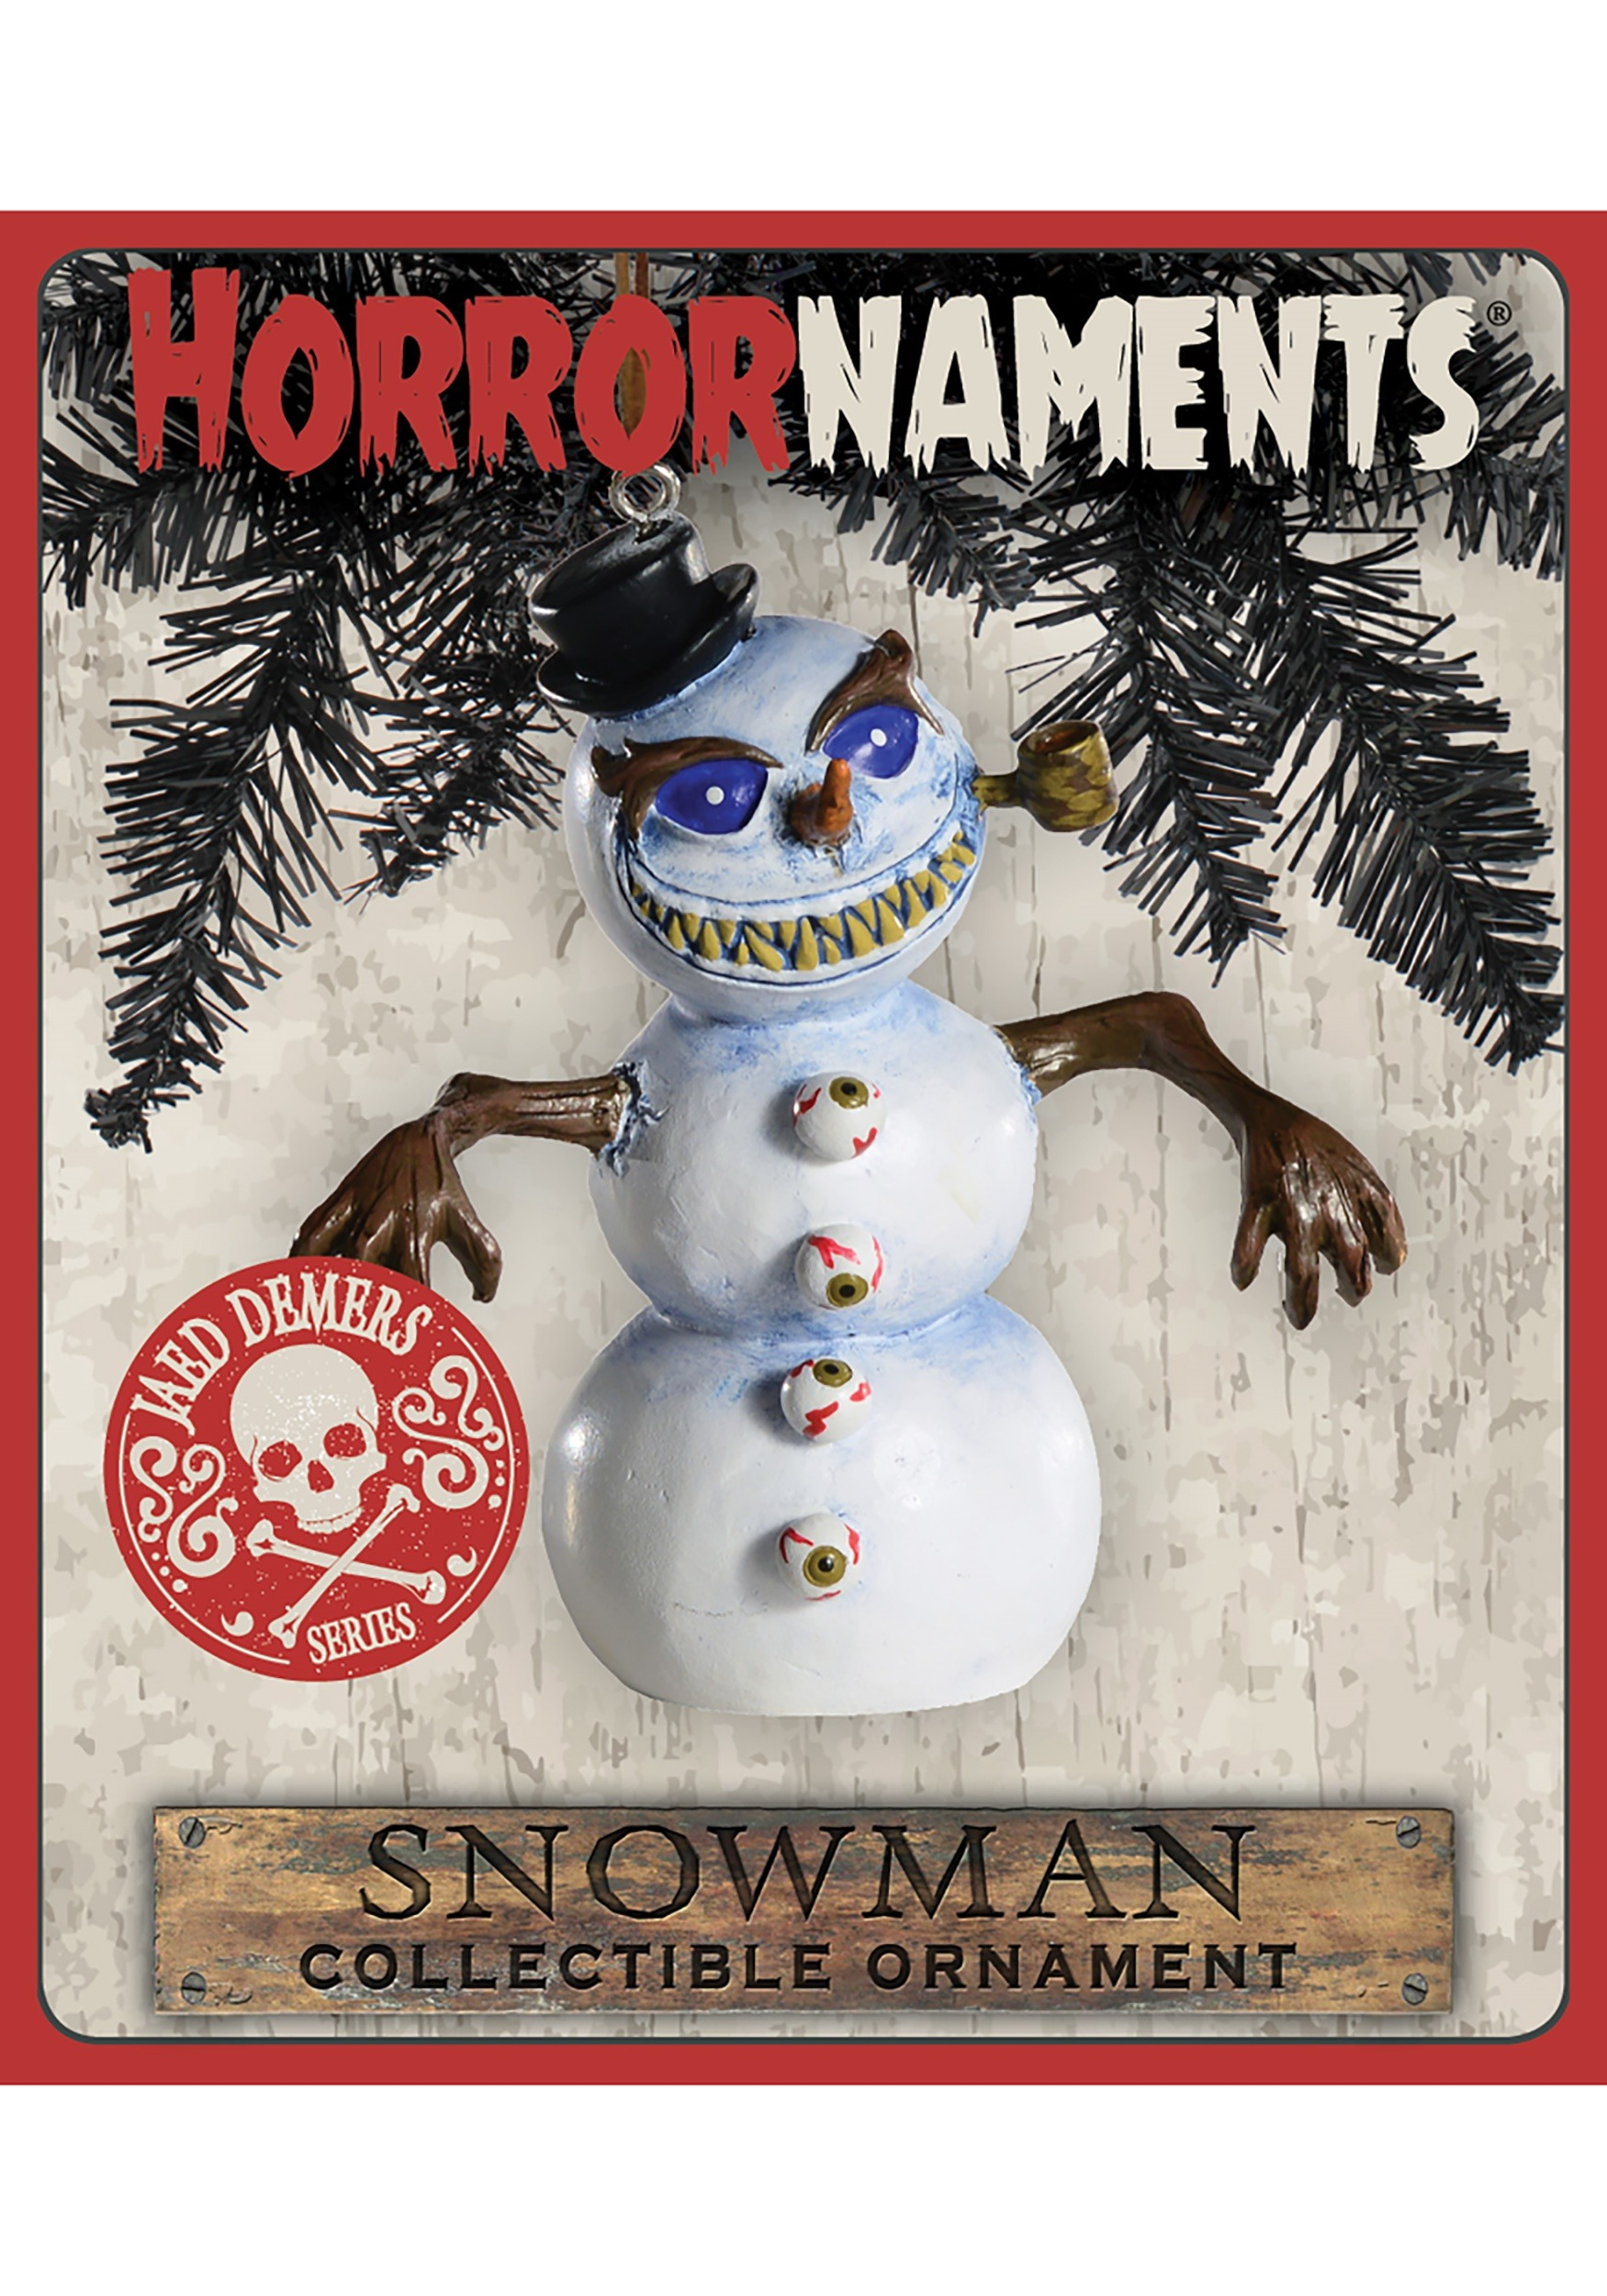 Snowman Horrornaments Molded Ornament